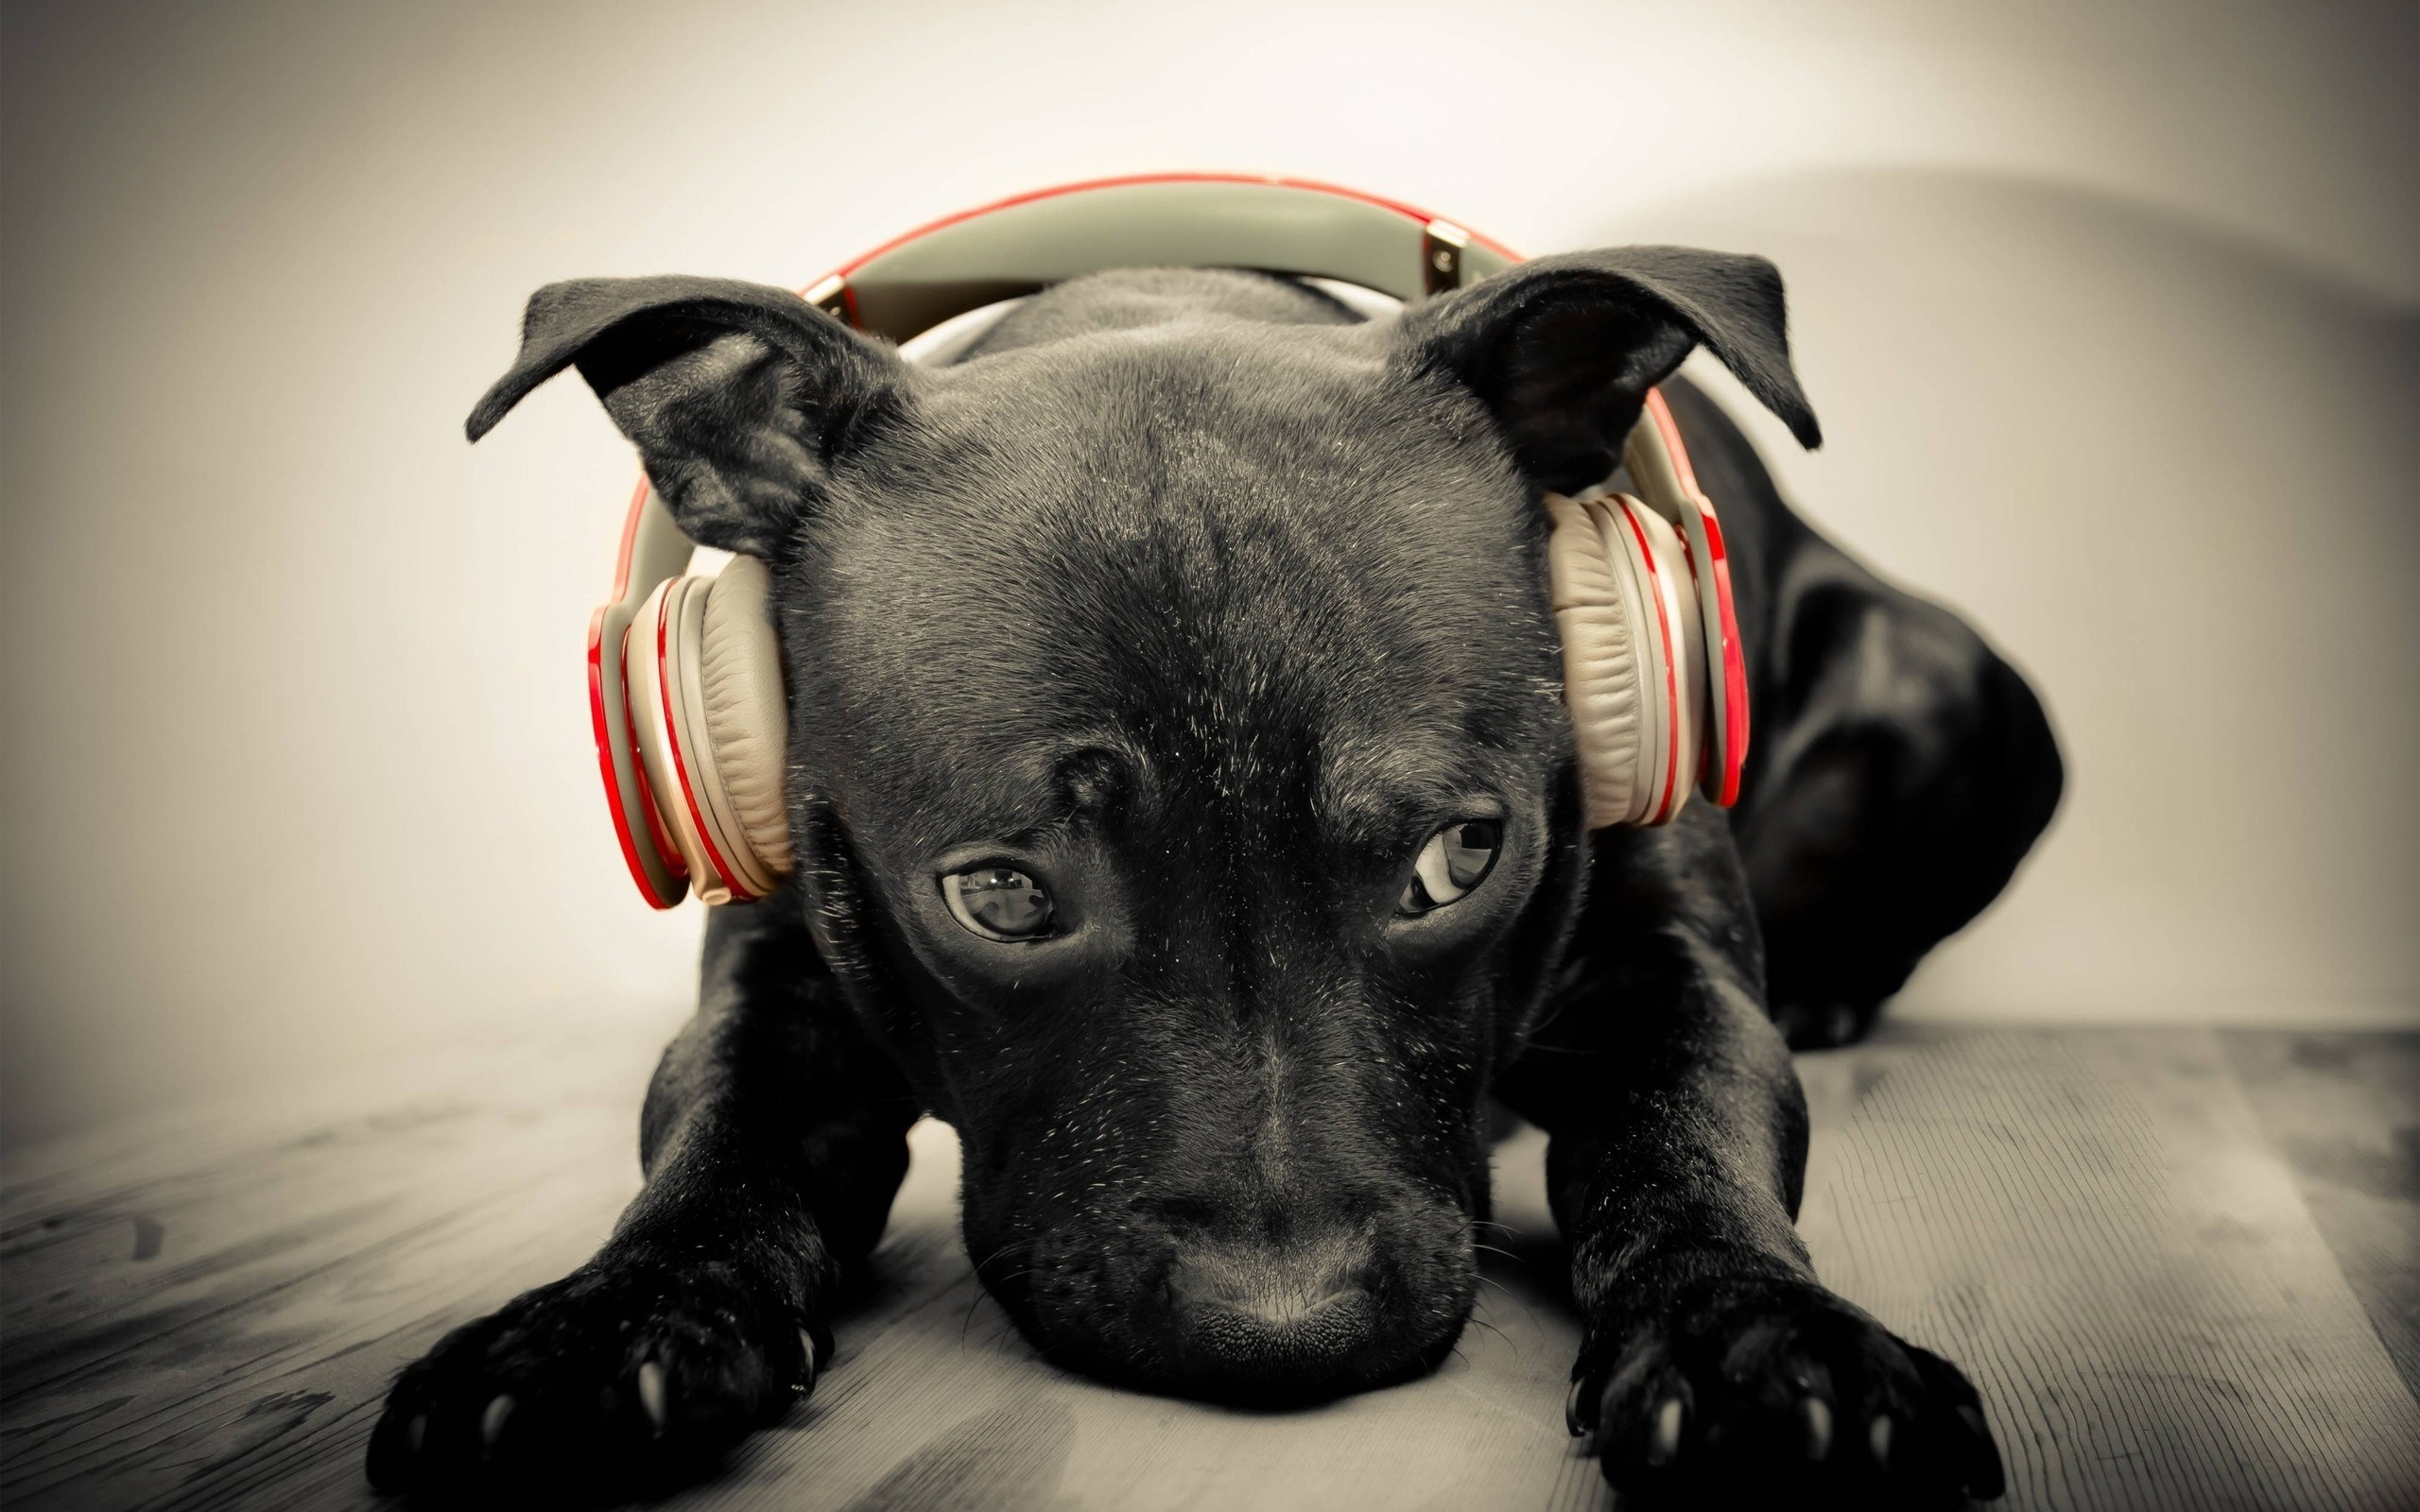 black dog headphones music wide high quality wallpaper photos for desktop background